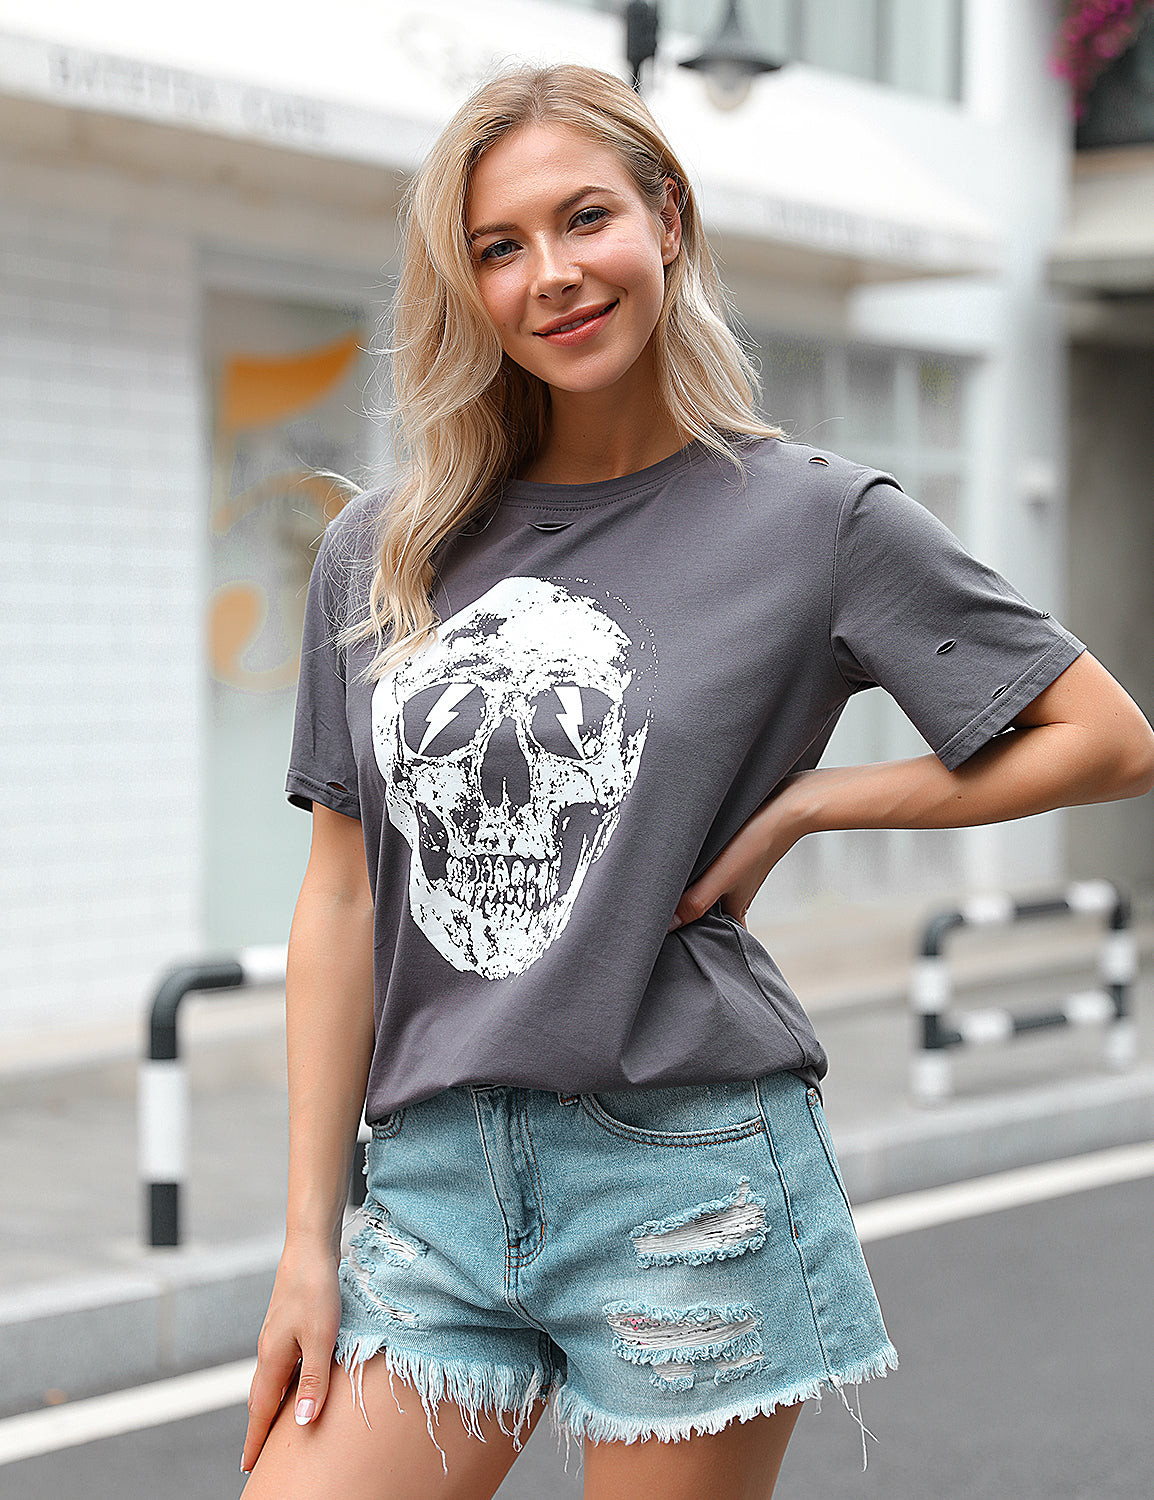 Blooming Jelly_Streetwear Cutout Hole Cool Skull T-Shirt_Slate Gray_153335_07_Stylish Street Wear Soft Tee_Tops_T-Shirt